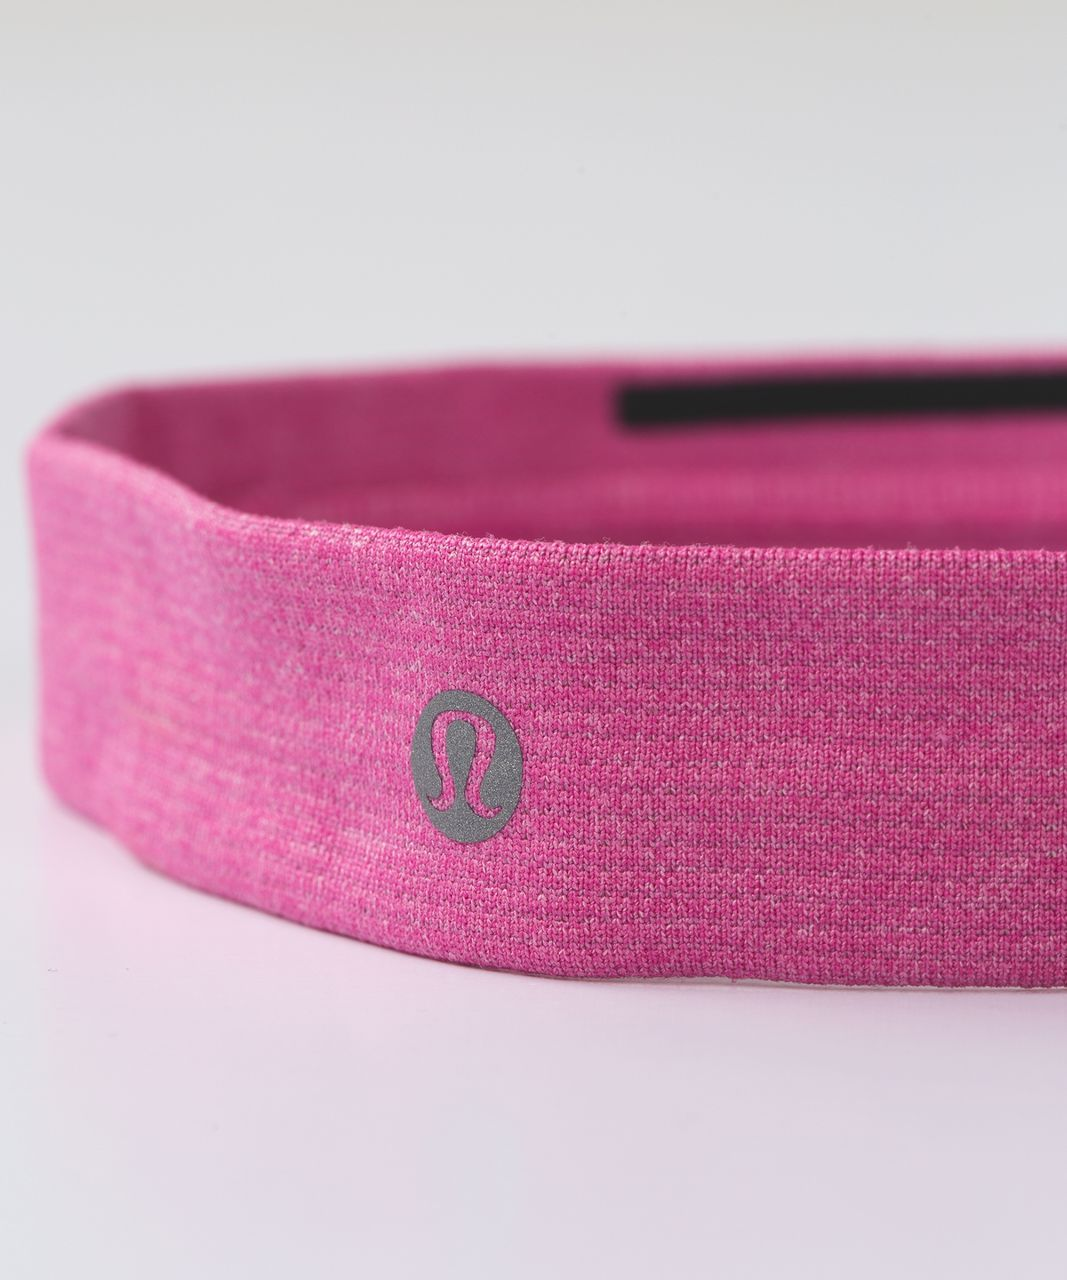 Lululemon Cardio Cross Trainer Headband - Heathered Pink Paradise